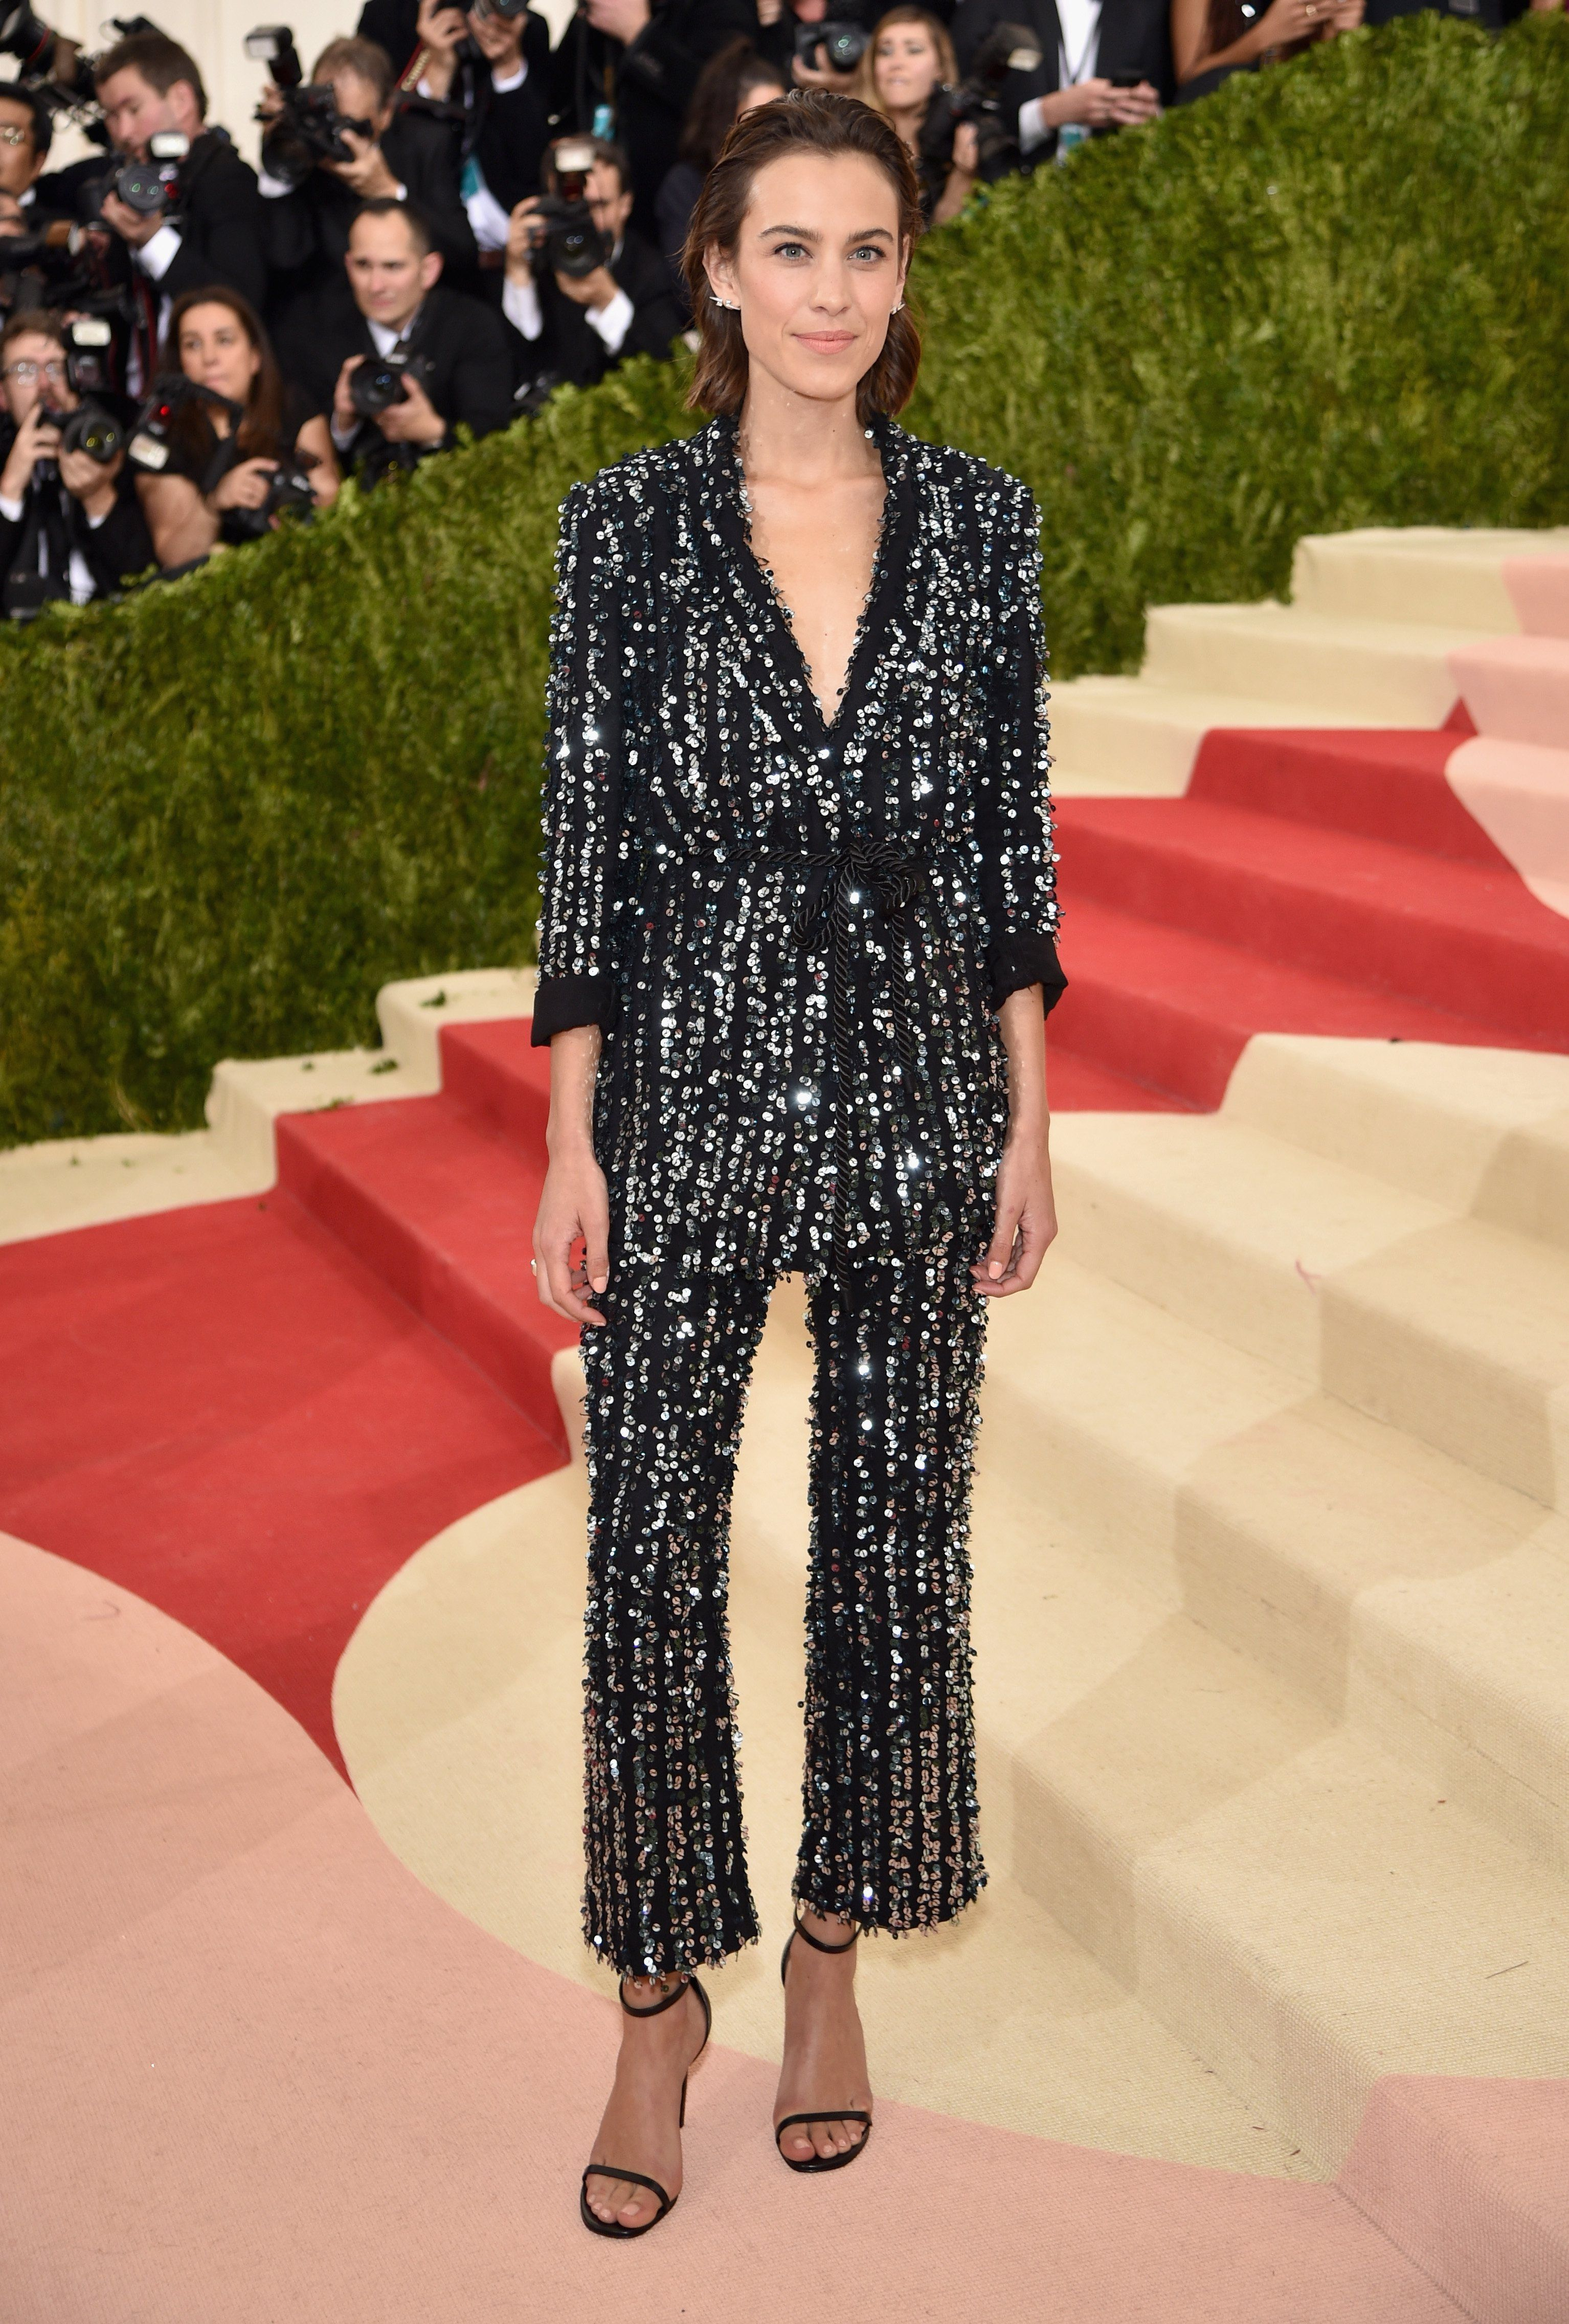 Met ball alexa owns it trousers fashion pinterest formal